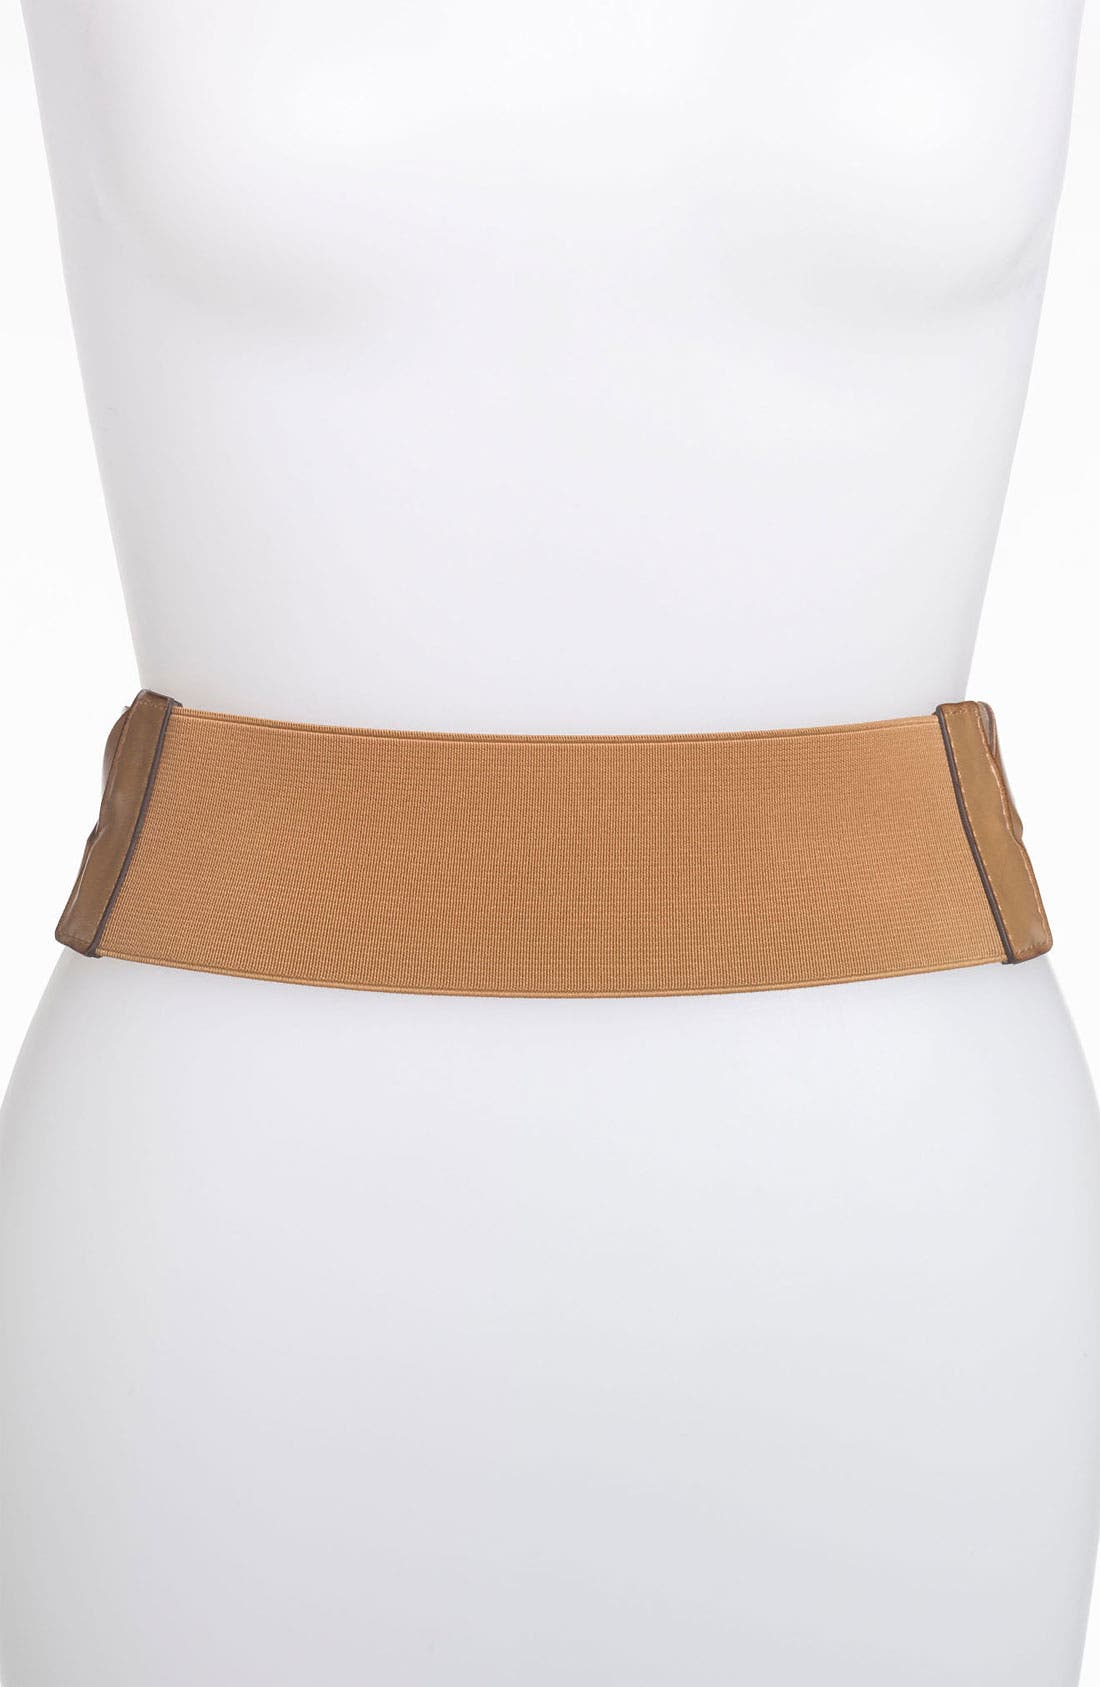 Alternate Image 2  - Steven by Steve Madden Braided Stretch Belt